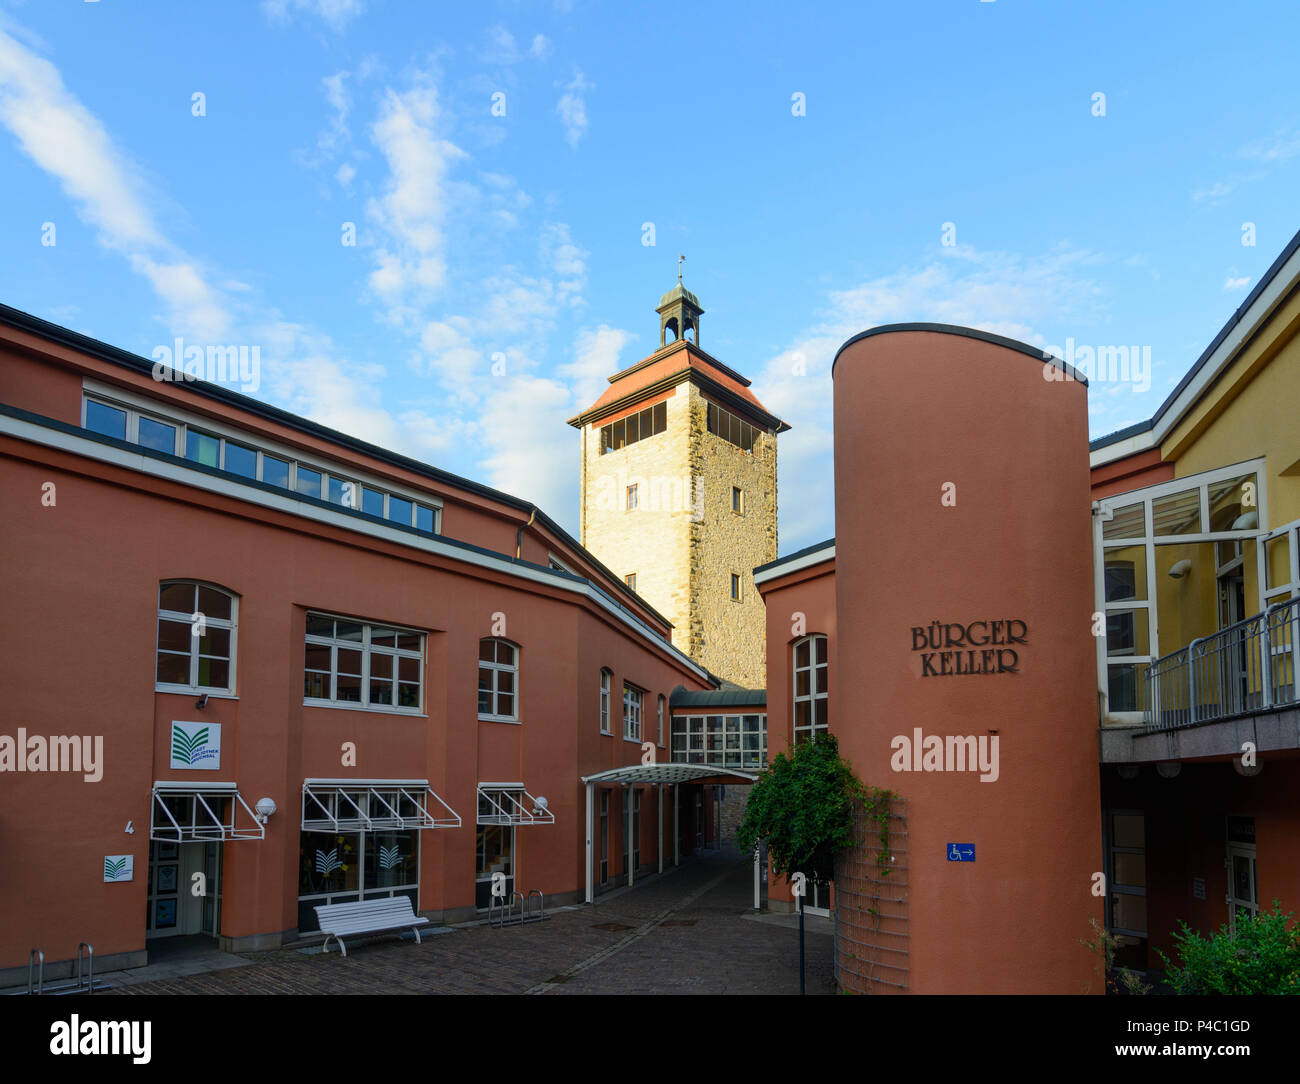 Bruchsal, Bürgerpark, Stadttheater (Citizens' Park, City Theater), tower Bergfried, Kraichgau-Stromberg, Baden-Wuerttemberg, Germany Stock Photo